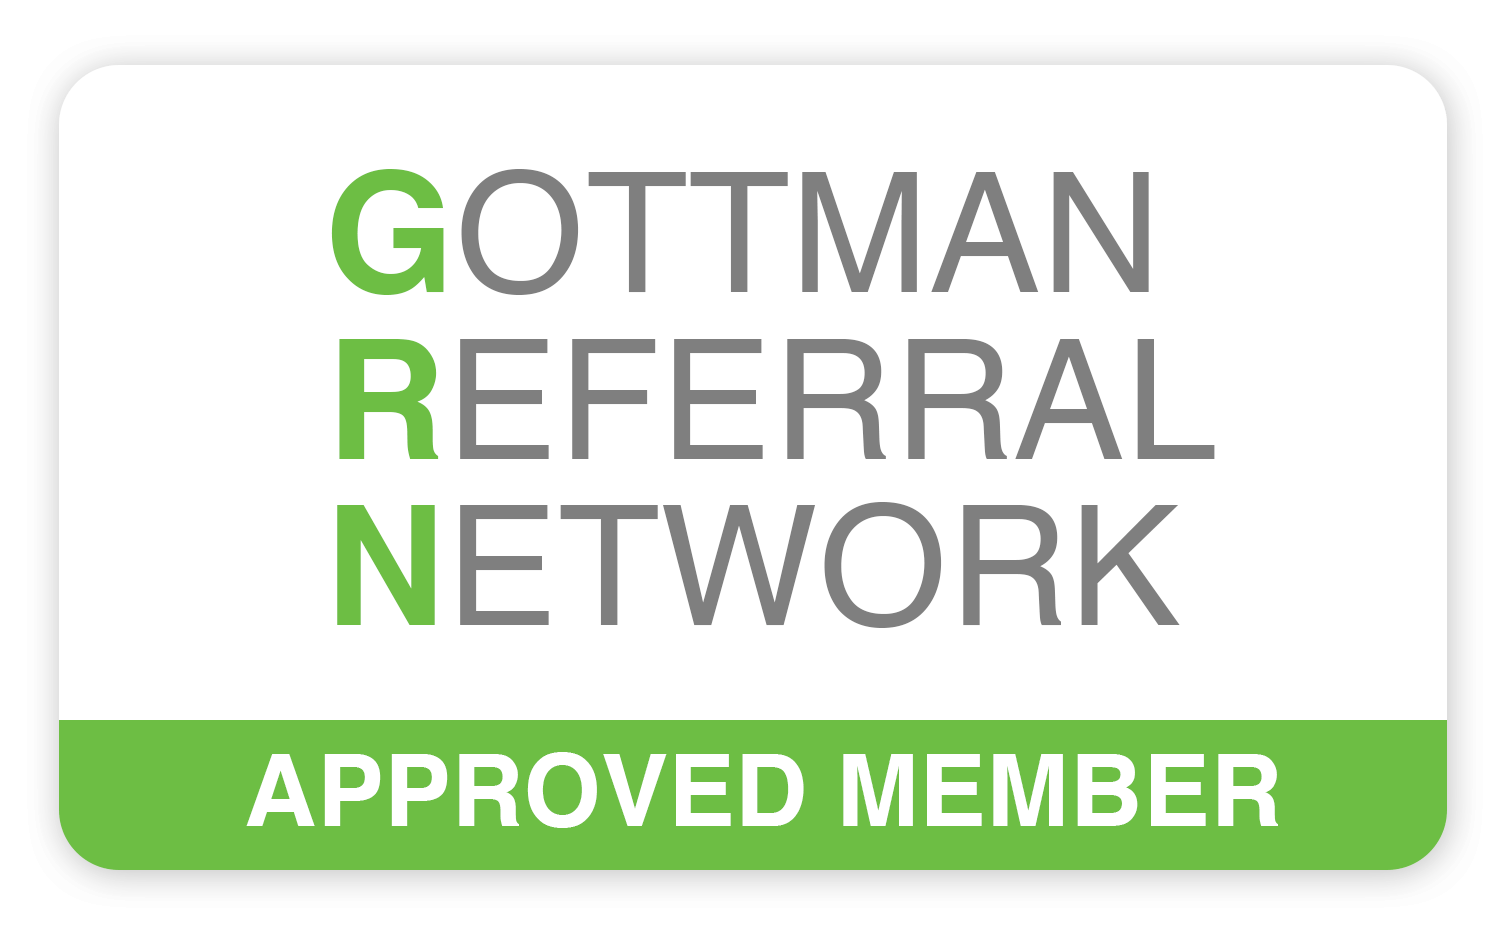 marina edelman's profile on the Gottman Referral Network